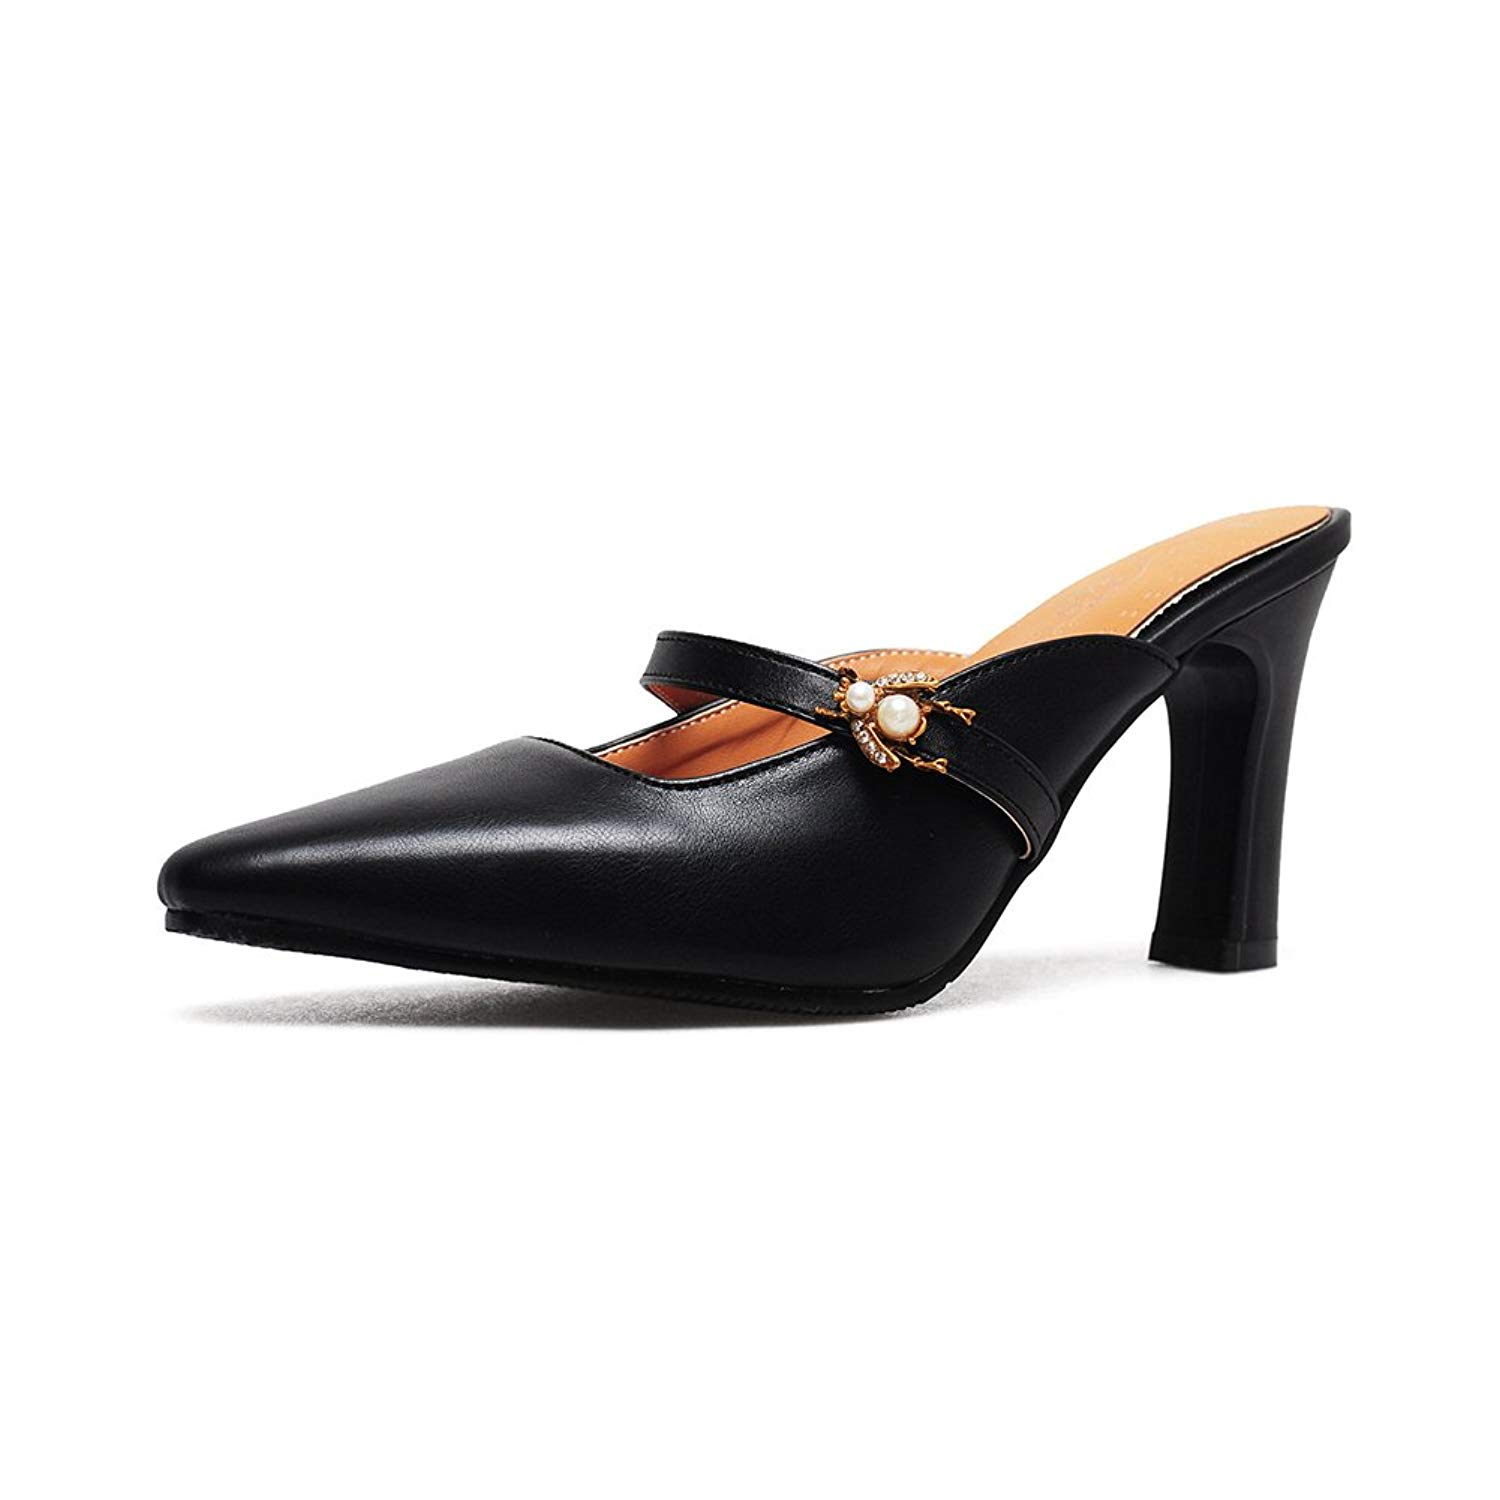 fafcb80270f Get Quotations · Btrada Women s Retro Slide Heeled Sandals Sexy Pointed Toe Mules  Slip On Crude Heel Dress Shoes